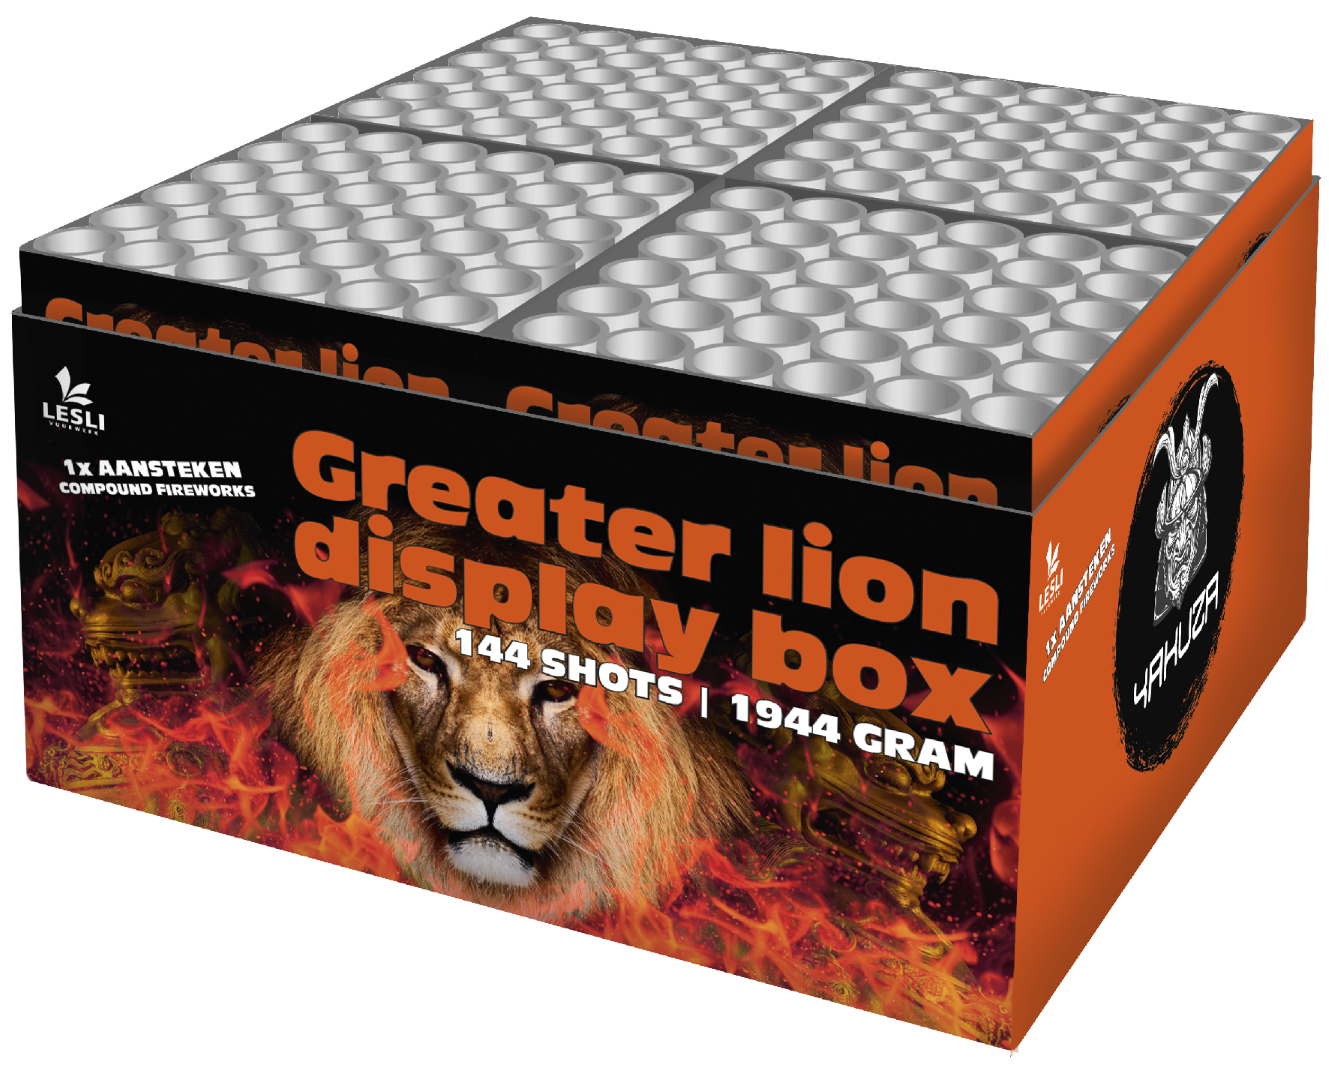 Great Lion display box (Compound)